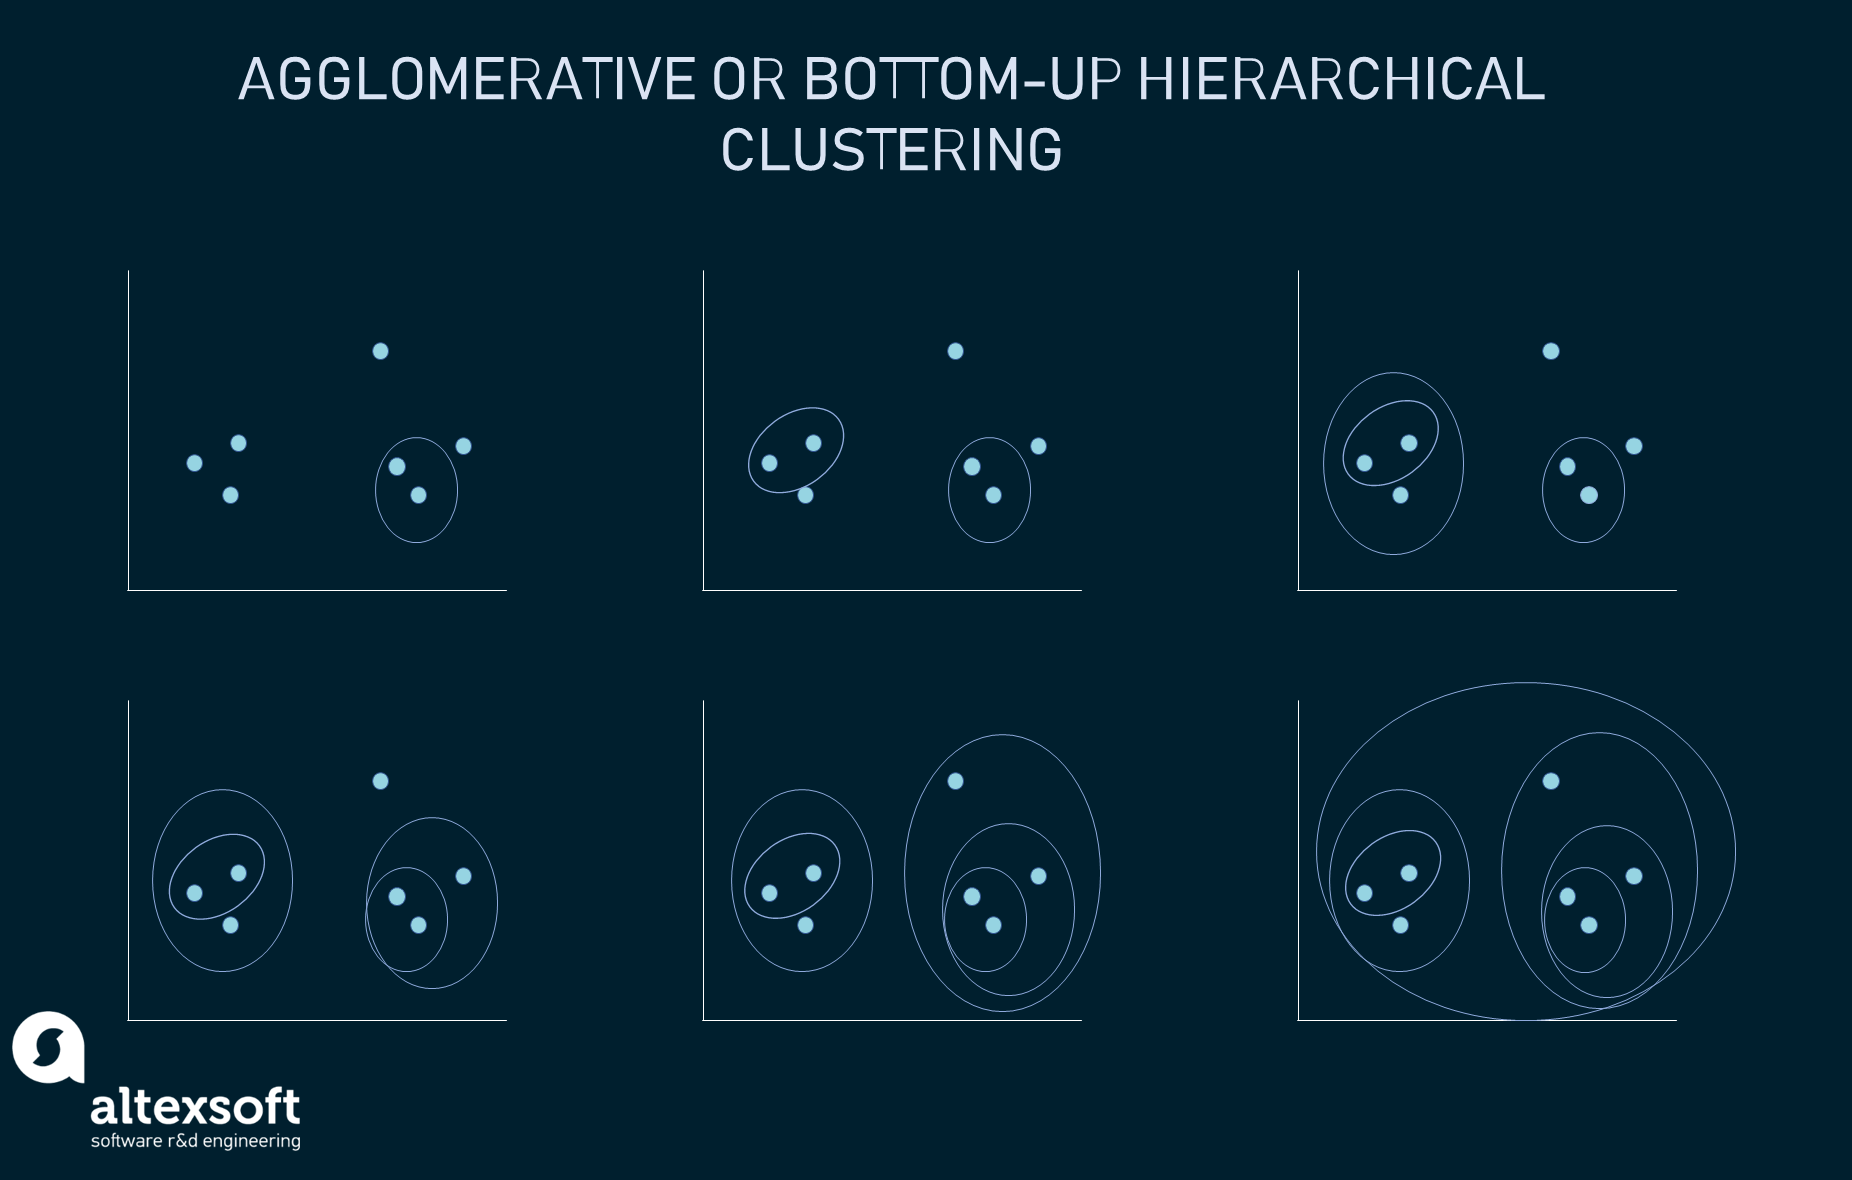 Agglomerative or bottom-up hierarchical clustering